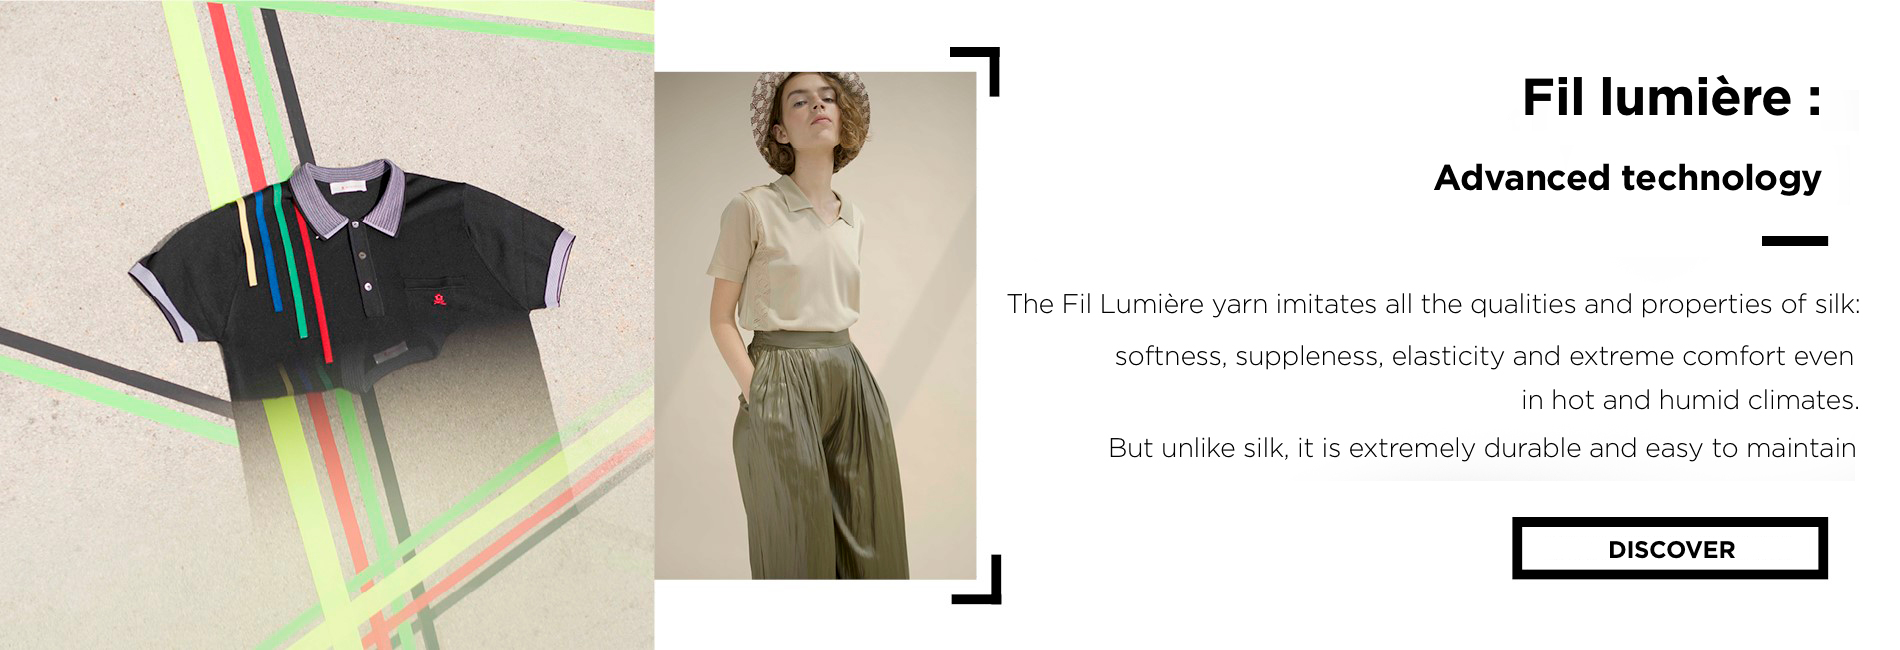 fil lumiere nouvelle collection